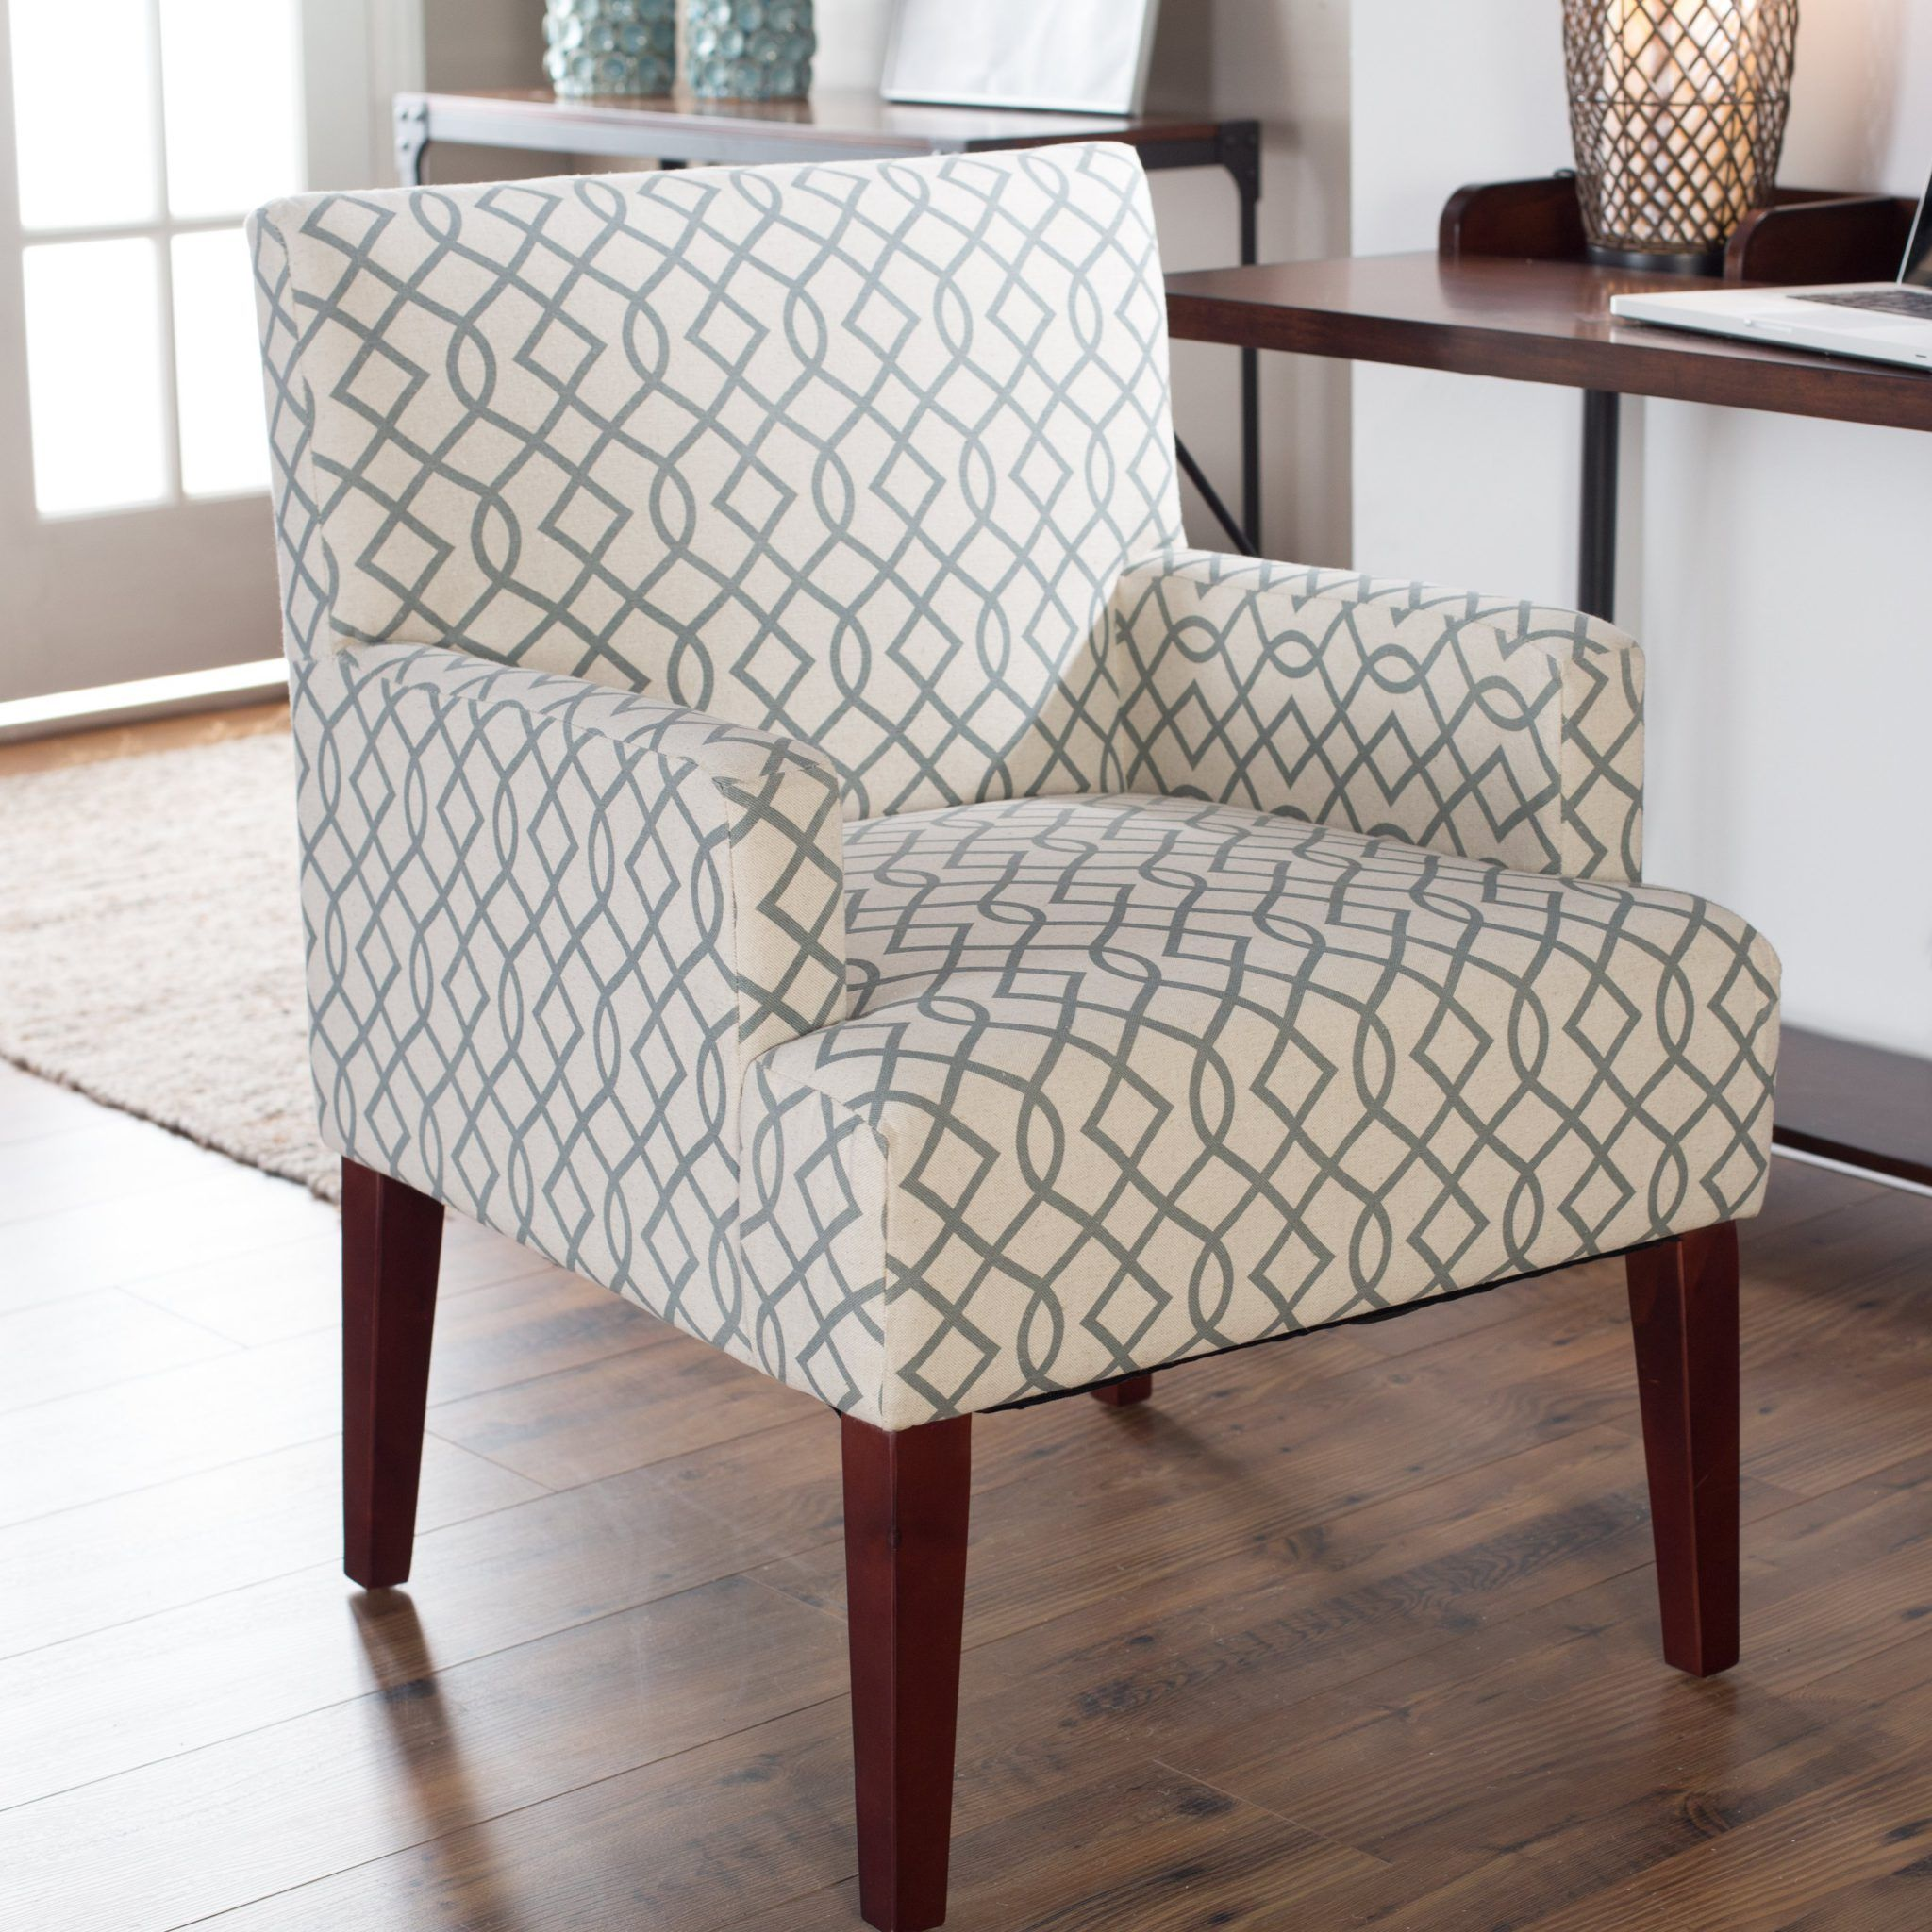 Best Accent Chairs With Arms For A Living Room Accent Chairs 400 x 300